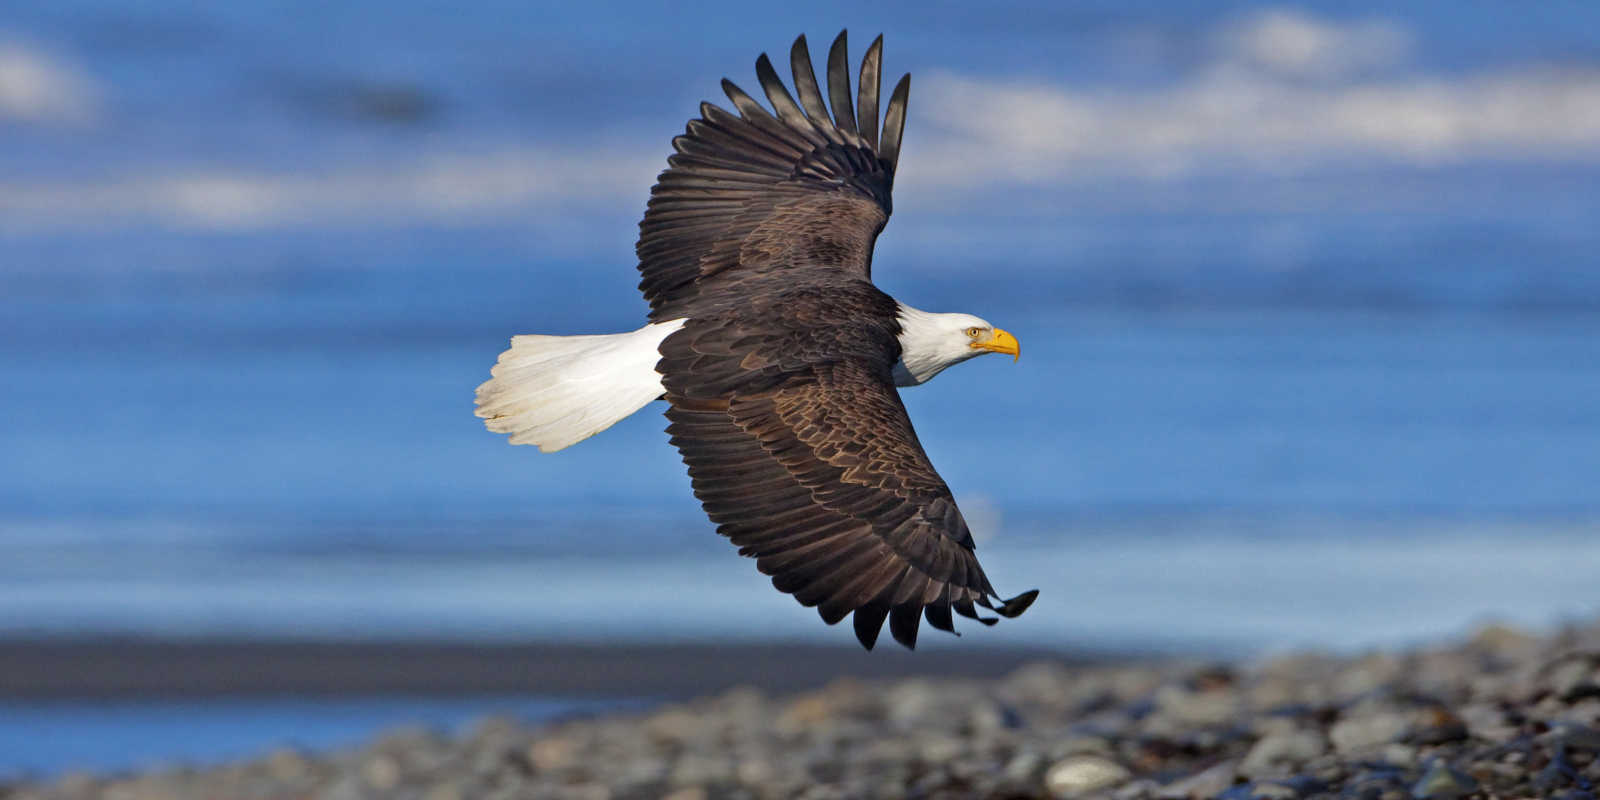 Bald eagle flying near Anchorage